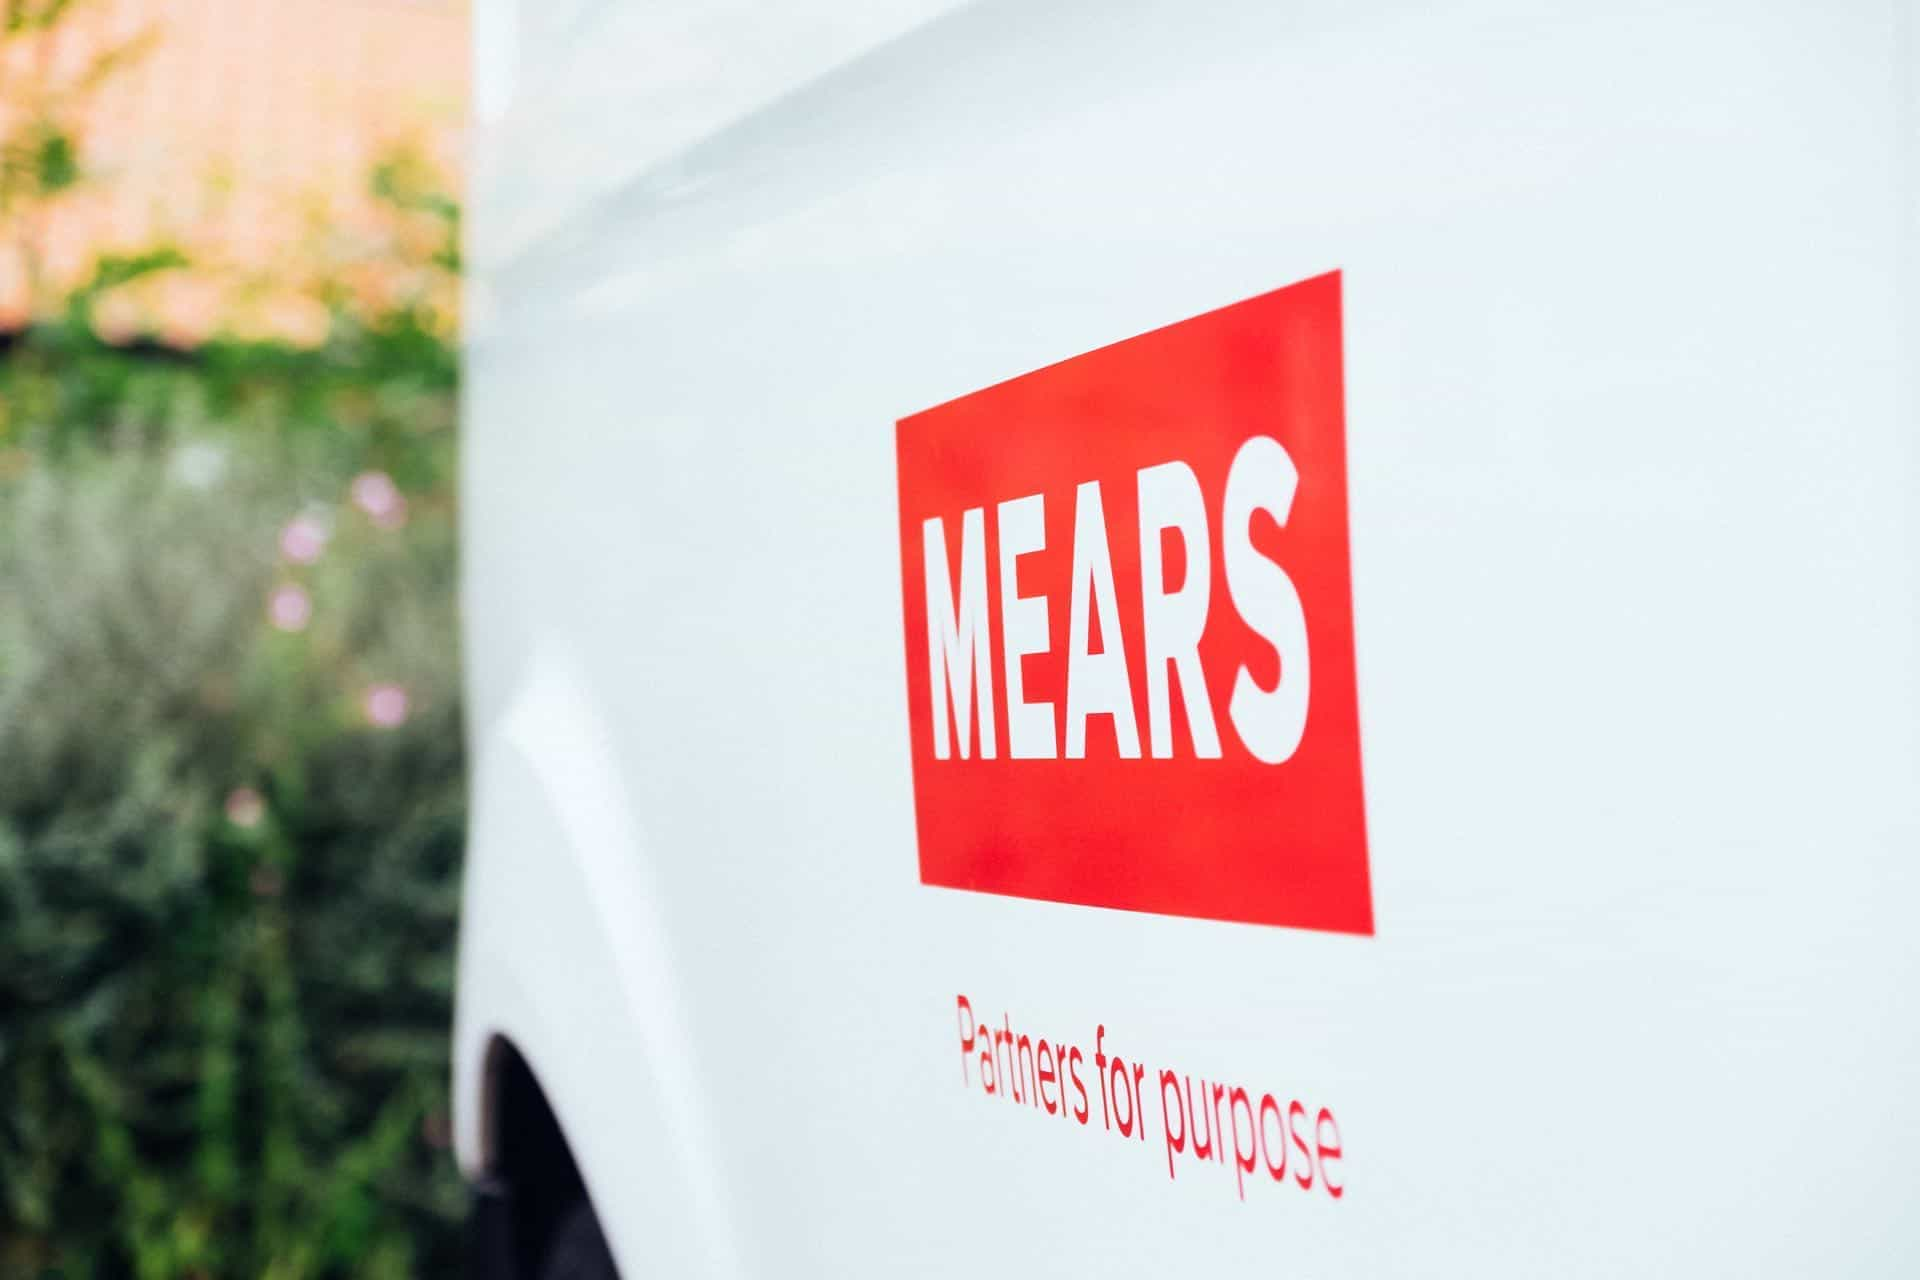 A £7million development of 34 new homes on the outskirts of Milton Keynes is one of the latest projects by Mears for client Lea Valley Homes, a subsidiary of Aldwyck Housing Group.